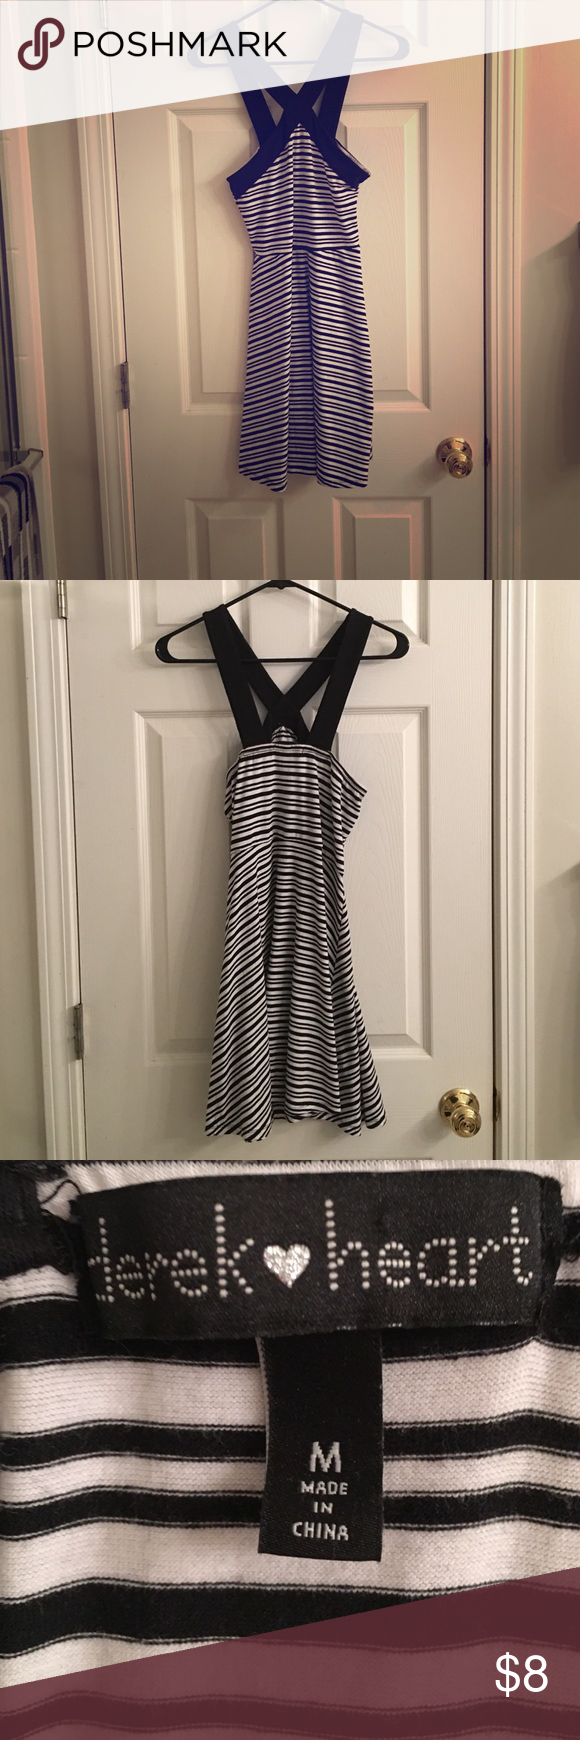 Black & White Never Worn Dress Black & White Never Worn Dress. About: Black and white striped summer dress. Very flowy with a neat strap design. Recommend to wear a strapless bra with this dress. Condition: Great. The dress has not been worn. Comes from a smoke-free home. If interested and would like more pictures do not hesitate to ask. Open to offers and bundles. No trades. Derek Heart Dresses Mini